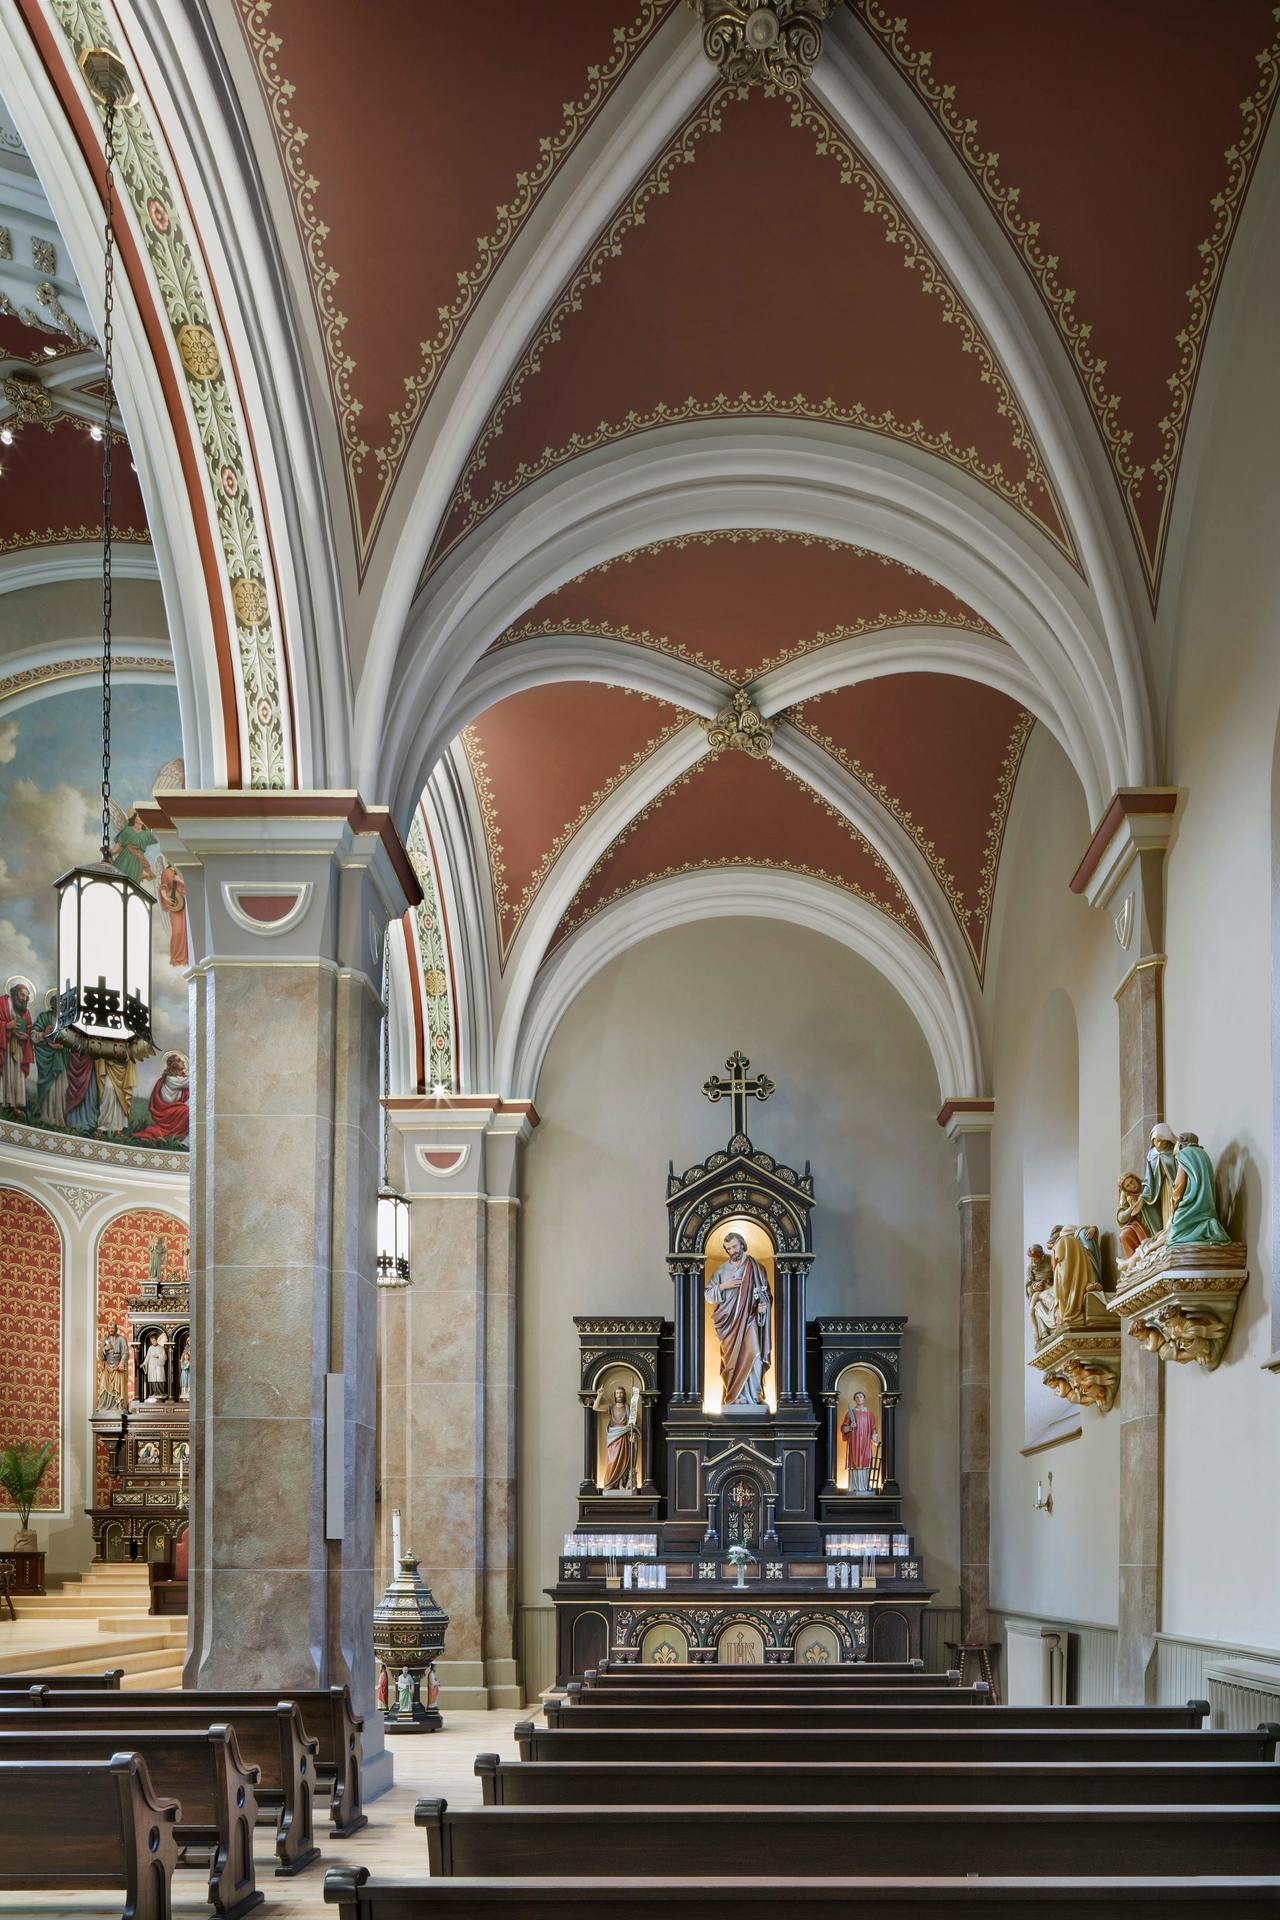 Interior lighting of the Church of the Assumption by Pulse Products.